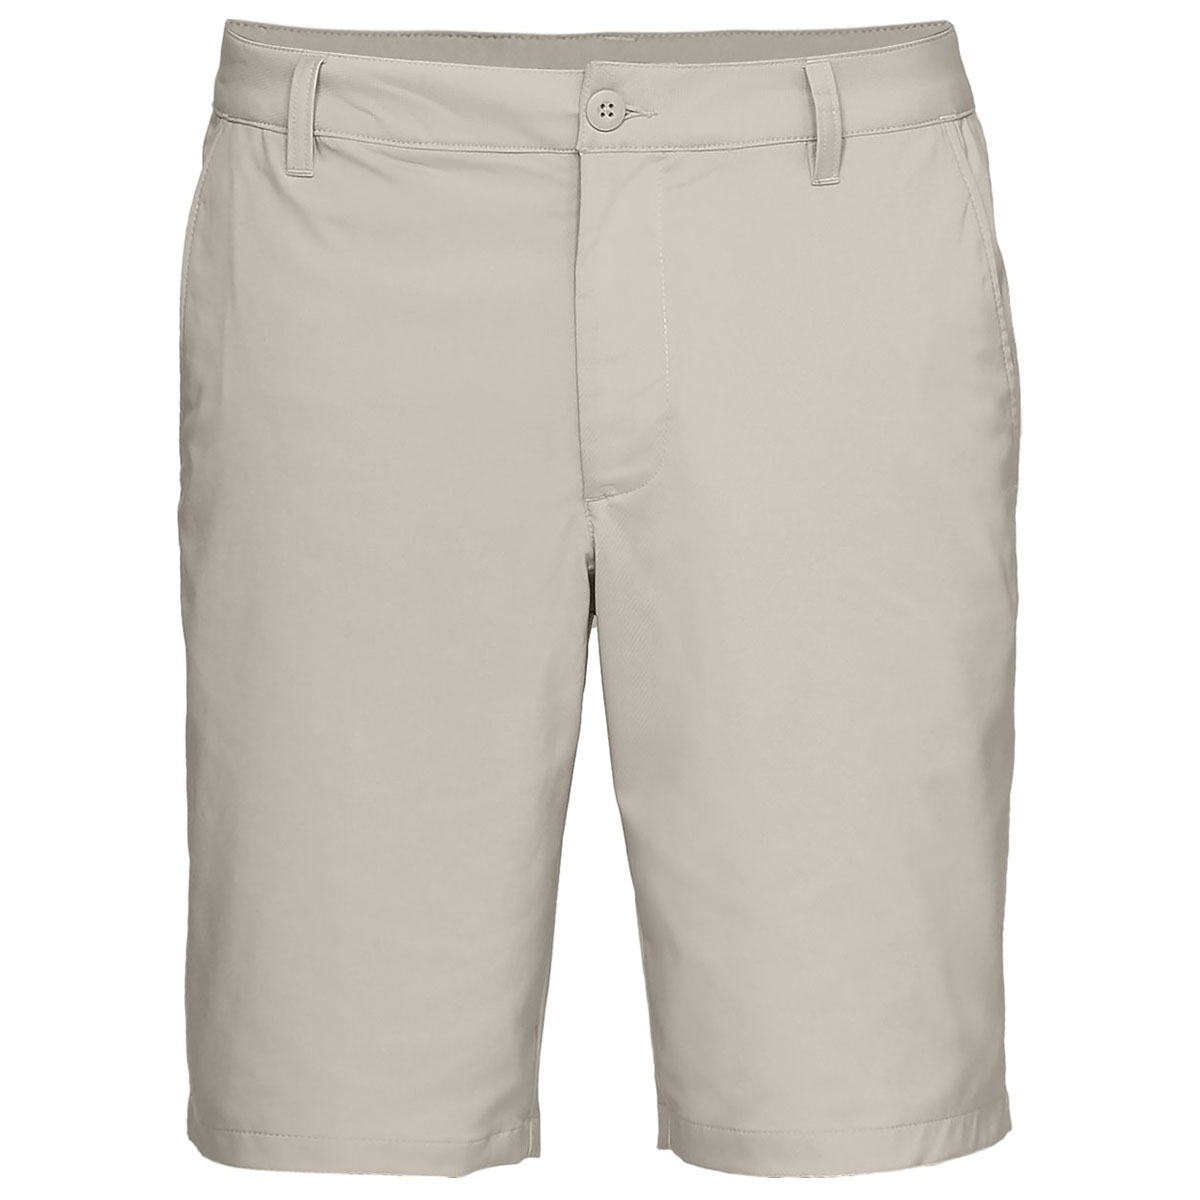 Under-Armour-Mens-2019-EU-Tech-Stretch-Soft-Tapered-Fitted-Golf-Shorts Indexbild 8